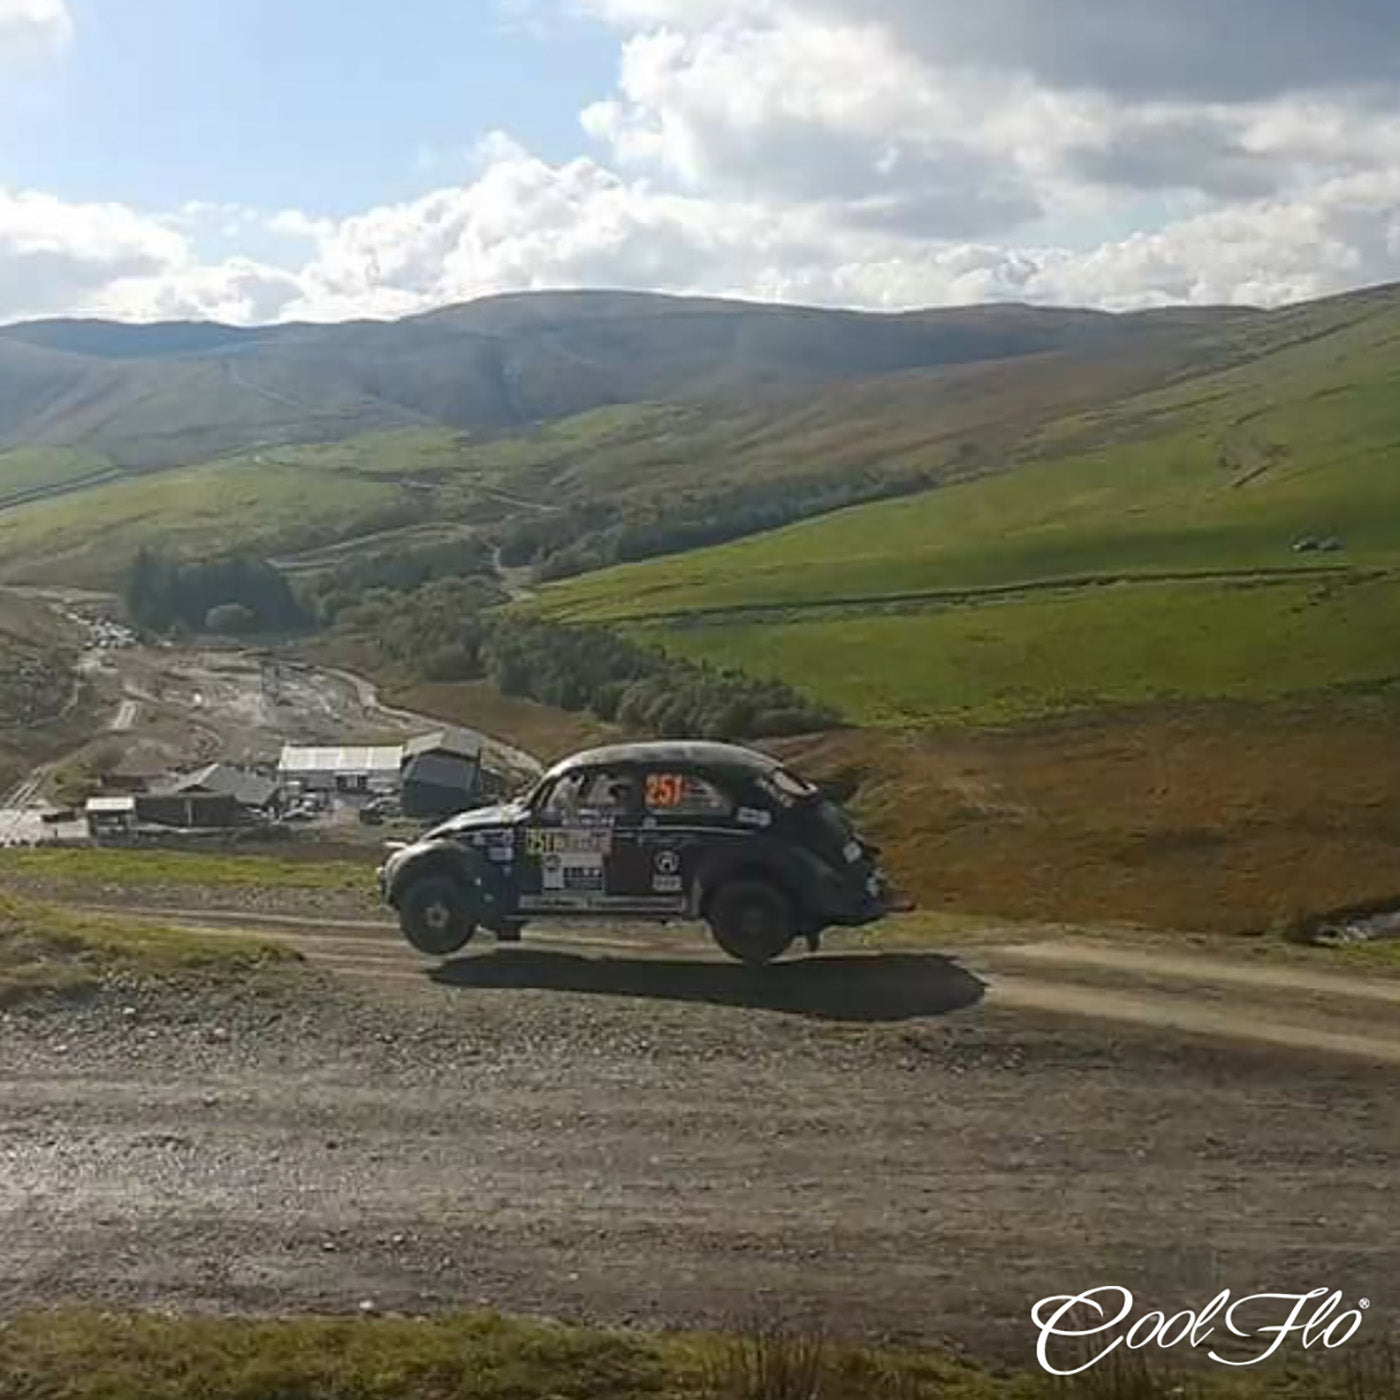 Welsh Rally GB 2018: Denzel Beetle / Cool Flo